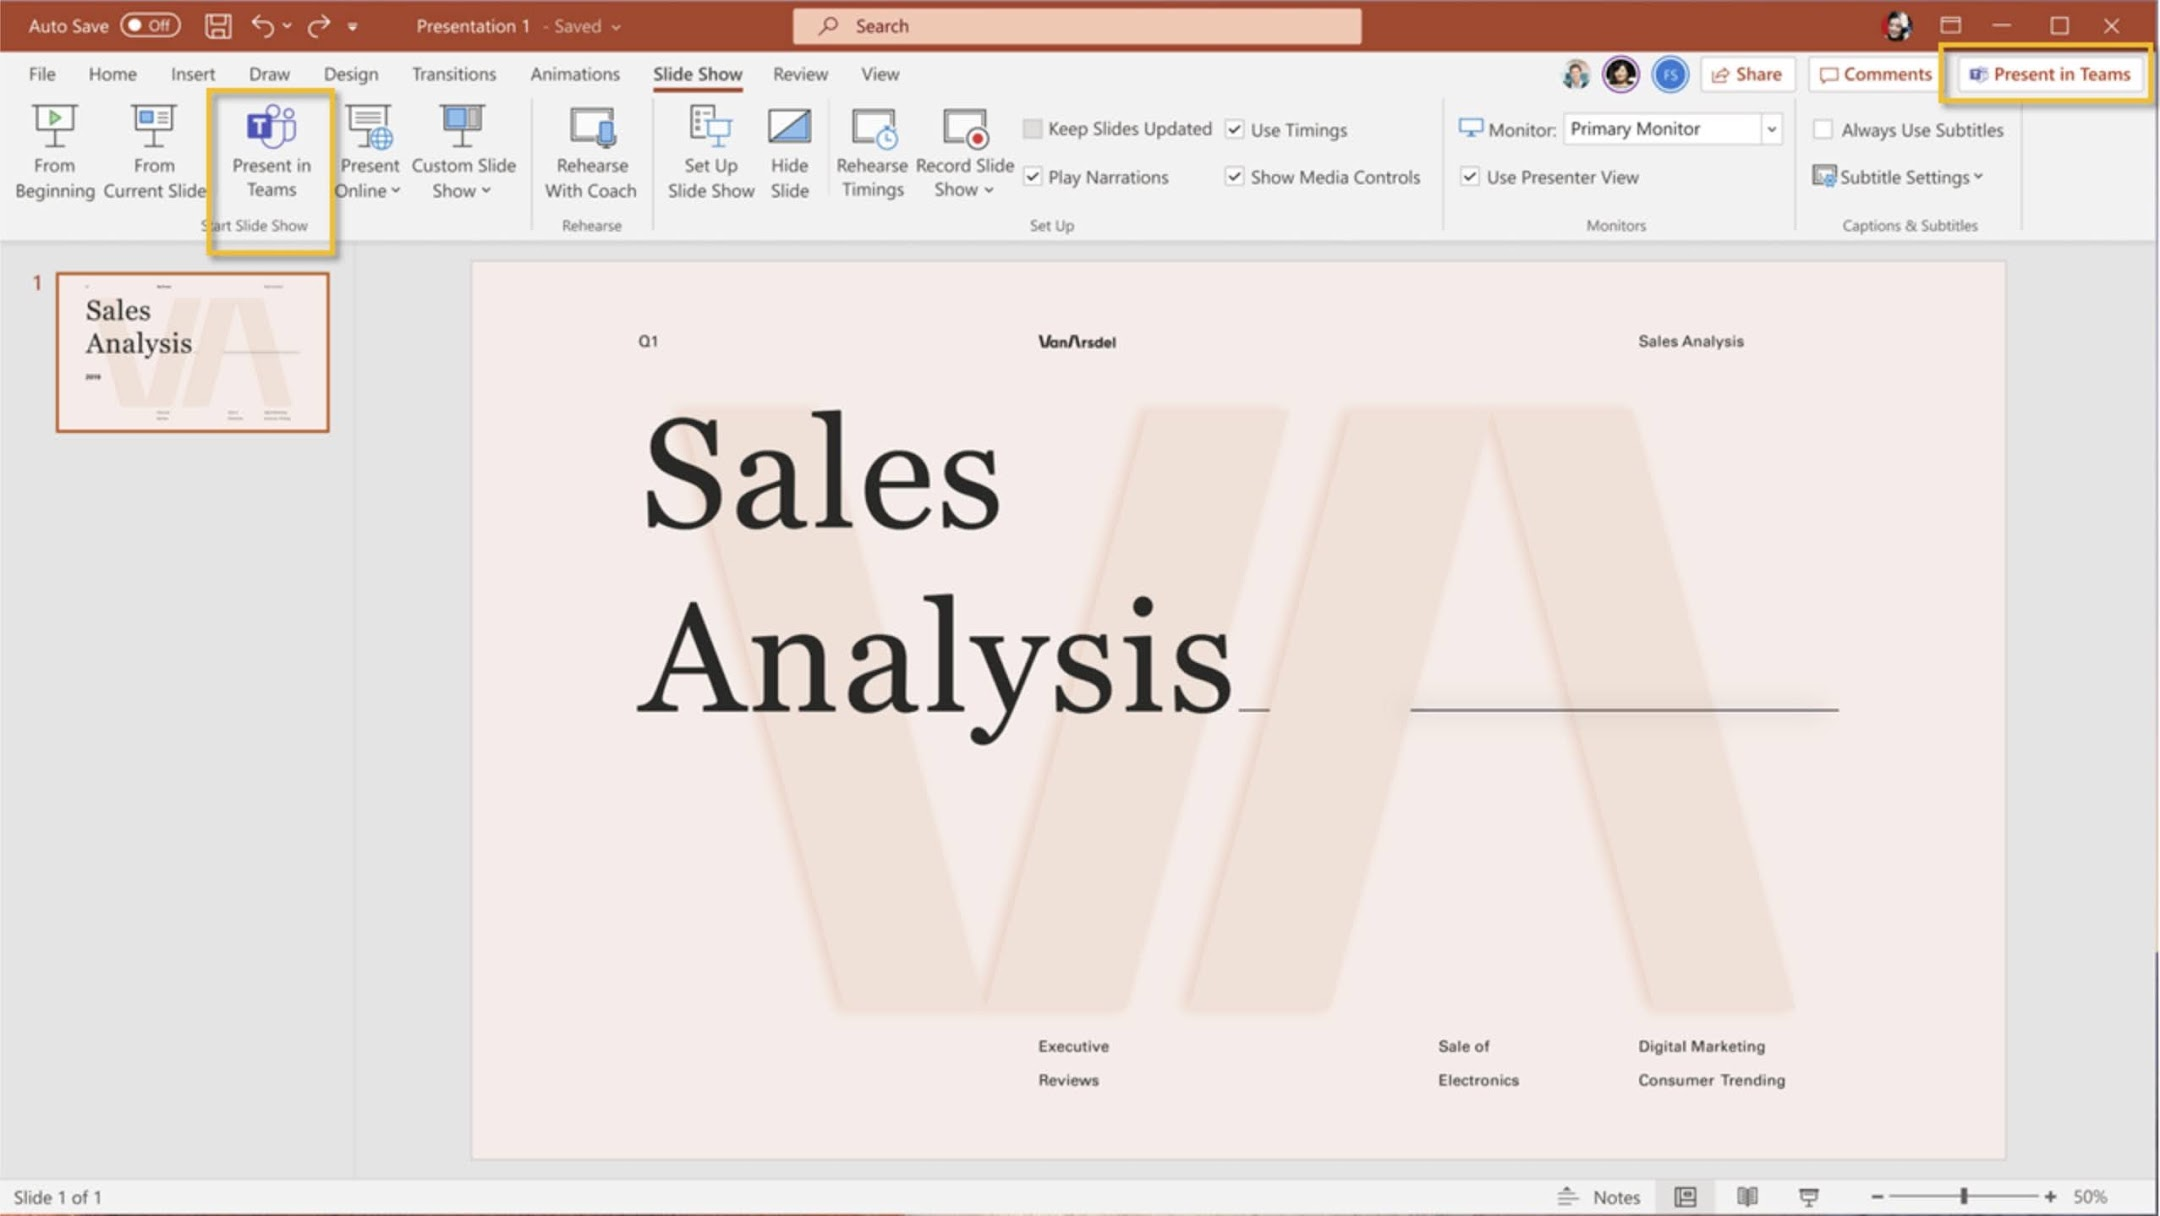 MC252704: PowerPoint Live: Present to Teams from PowerPoint for Windows